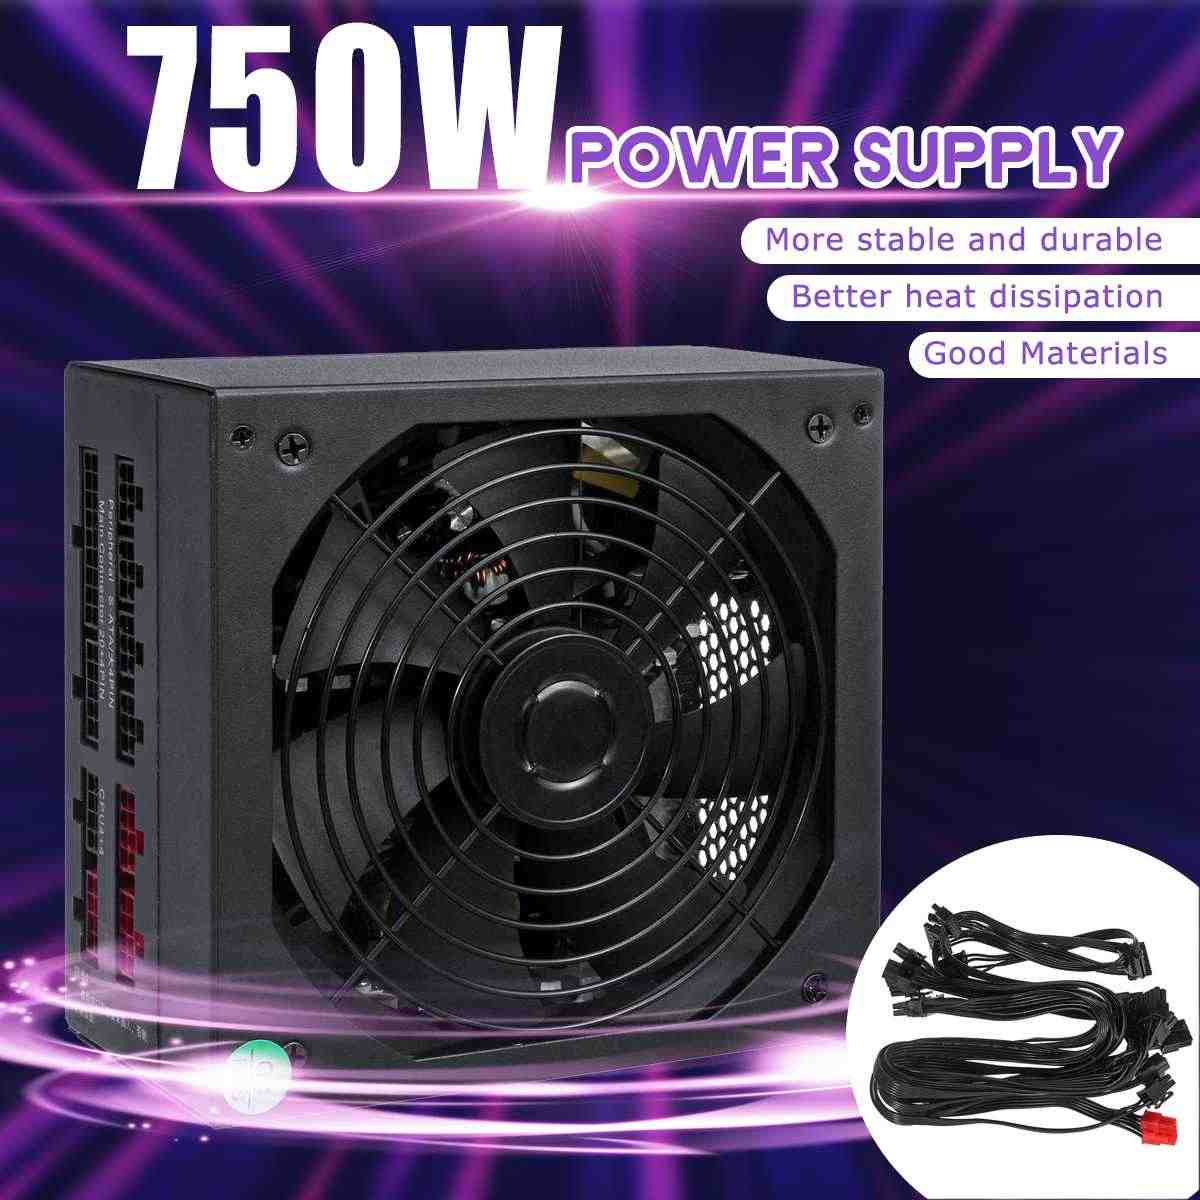 750W Psu Atx 12V Gaming Pc Voeding 24Pin/Pci/Sata/Atx 700 Walt 12cm Fan Nieuwe Computer Voeding Voor Btc